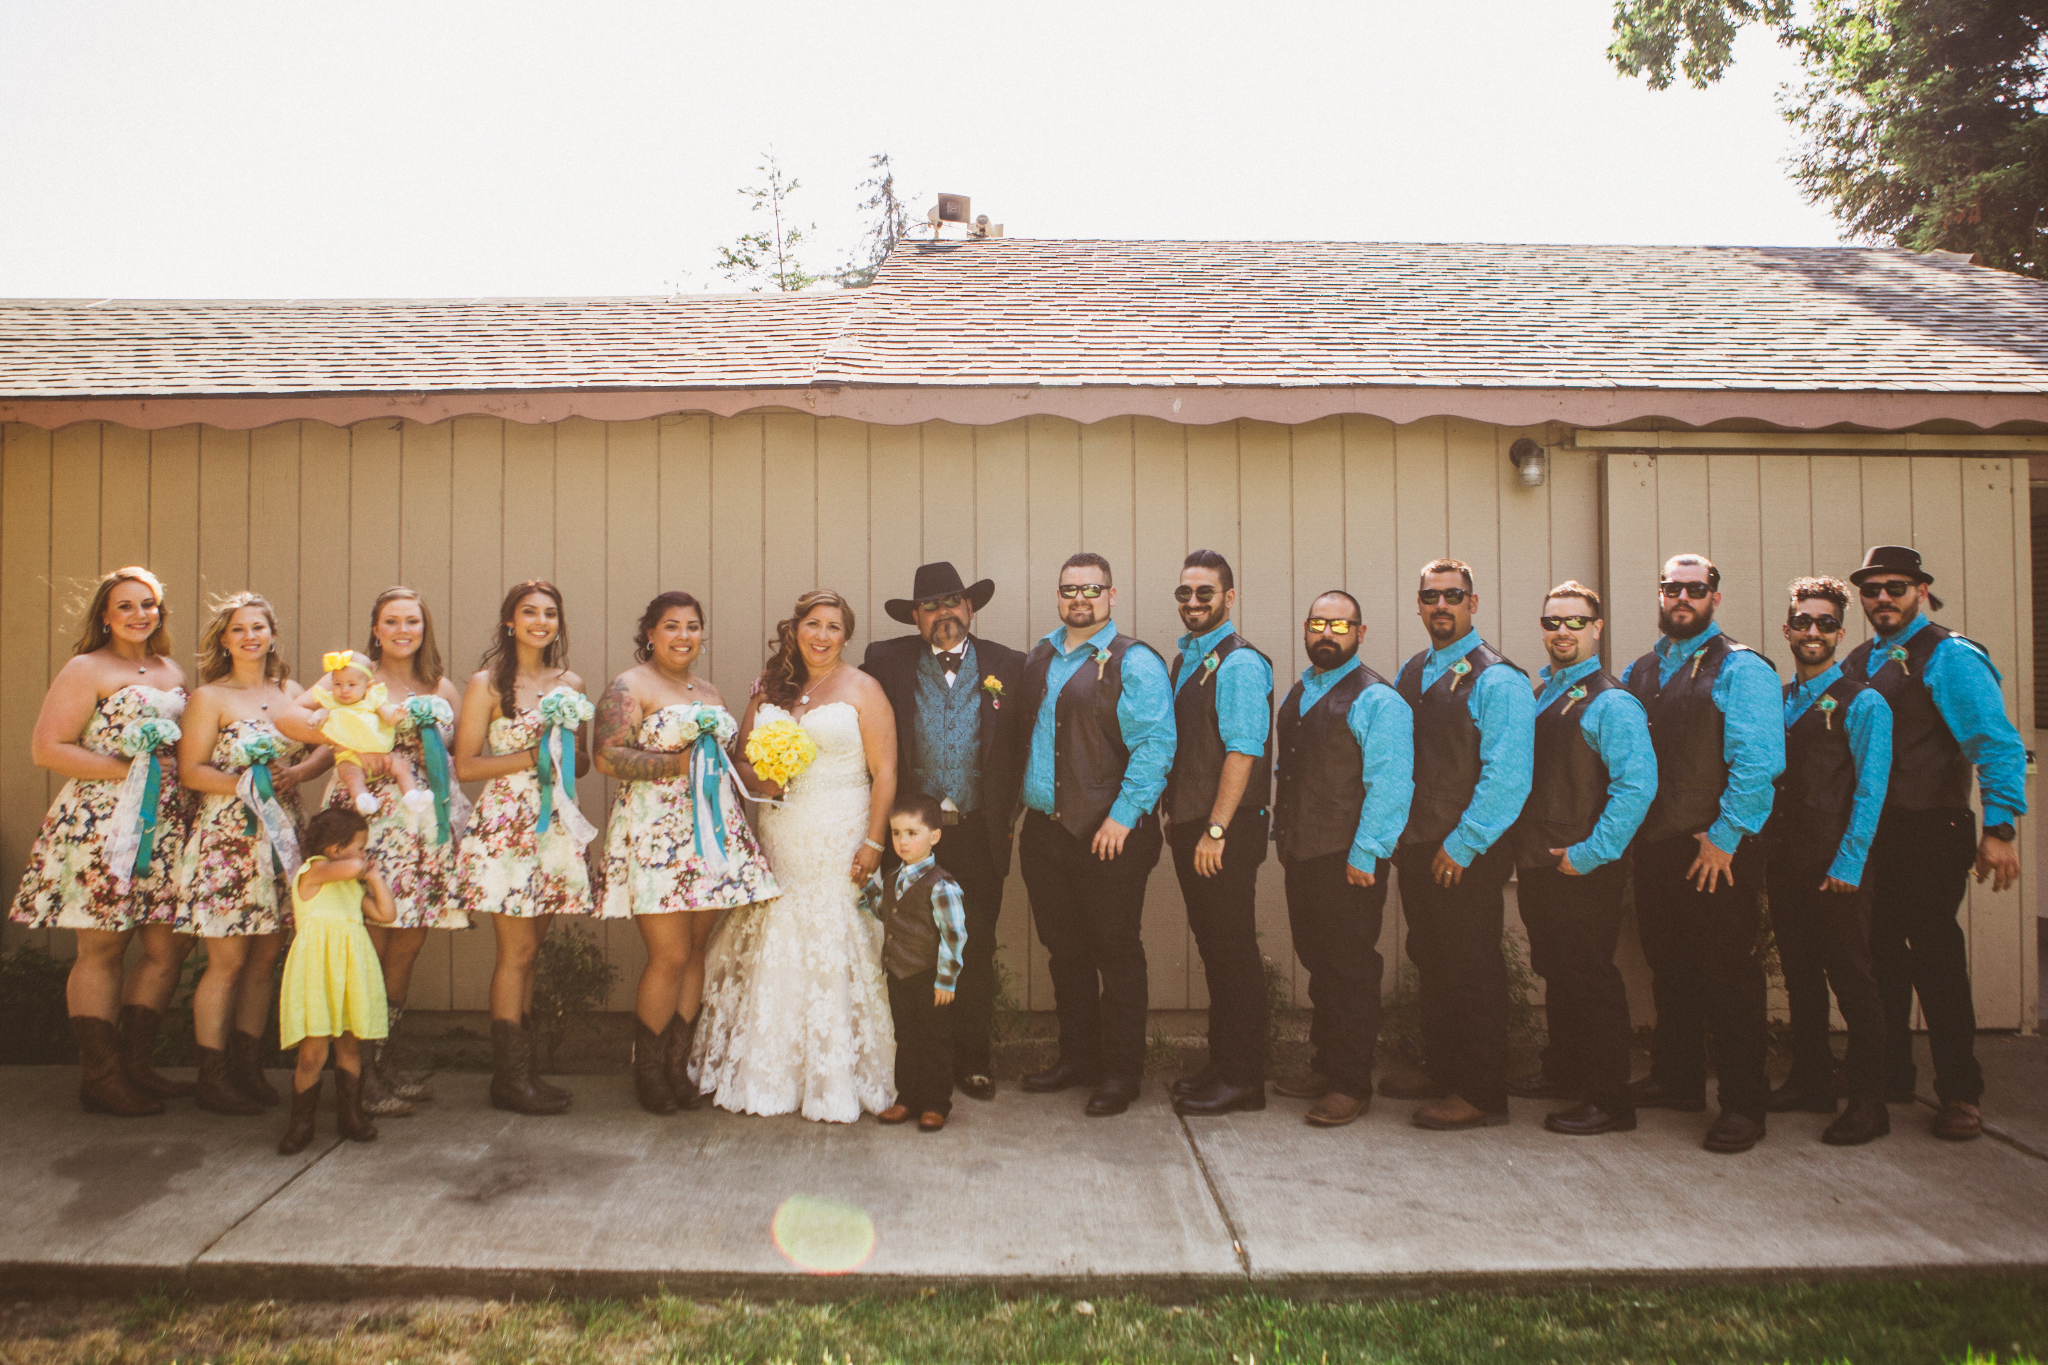 san diego wedding   photographer   lineup of bridesmaids in floral dress and groomsmen in   turquoise